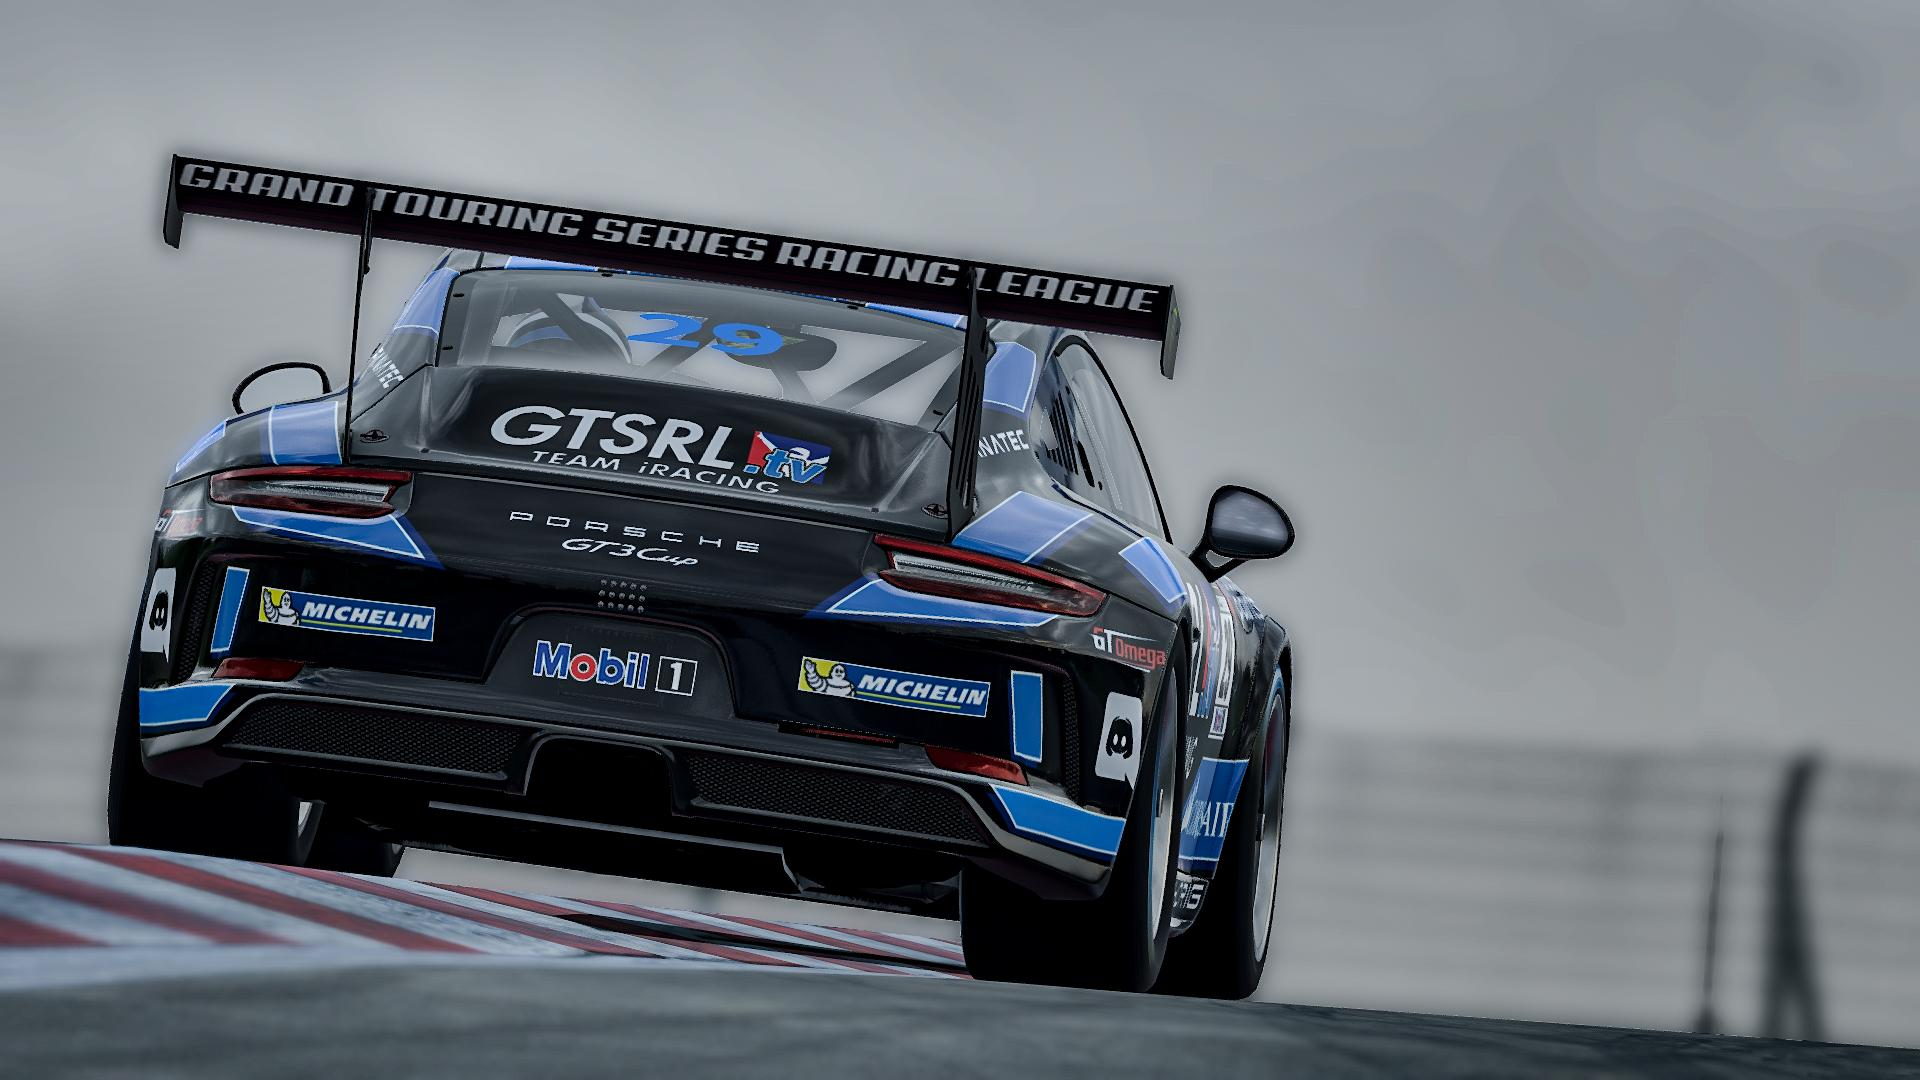 Preview of GTSRL Porsche 911 Cup by Vincent W.